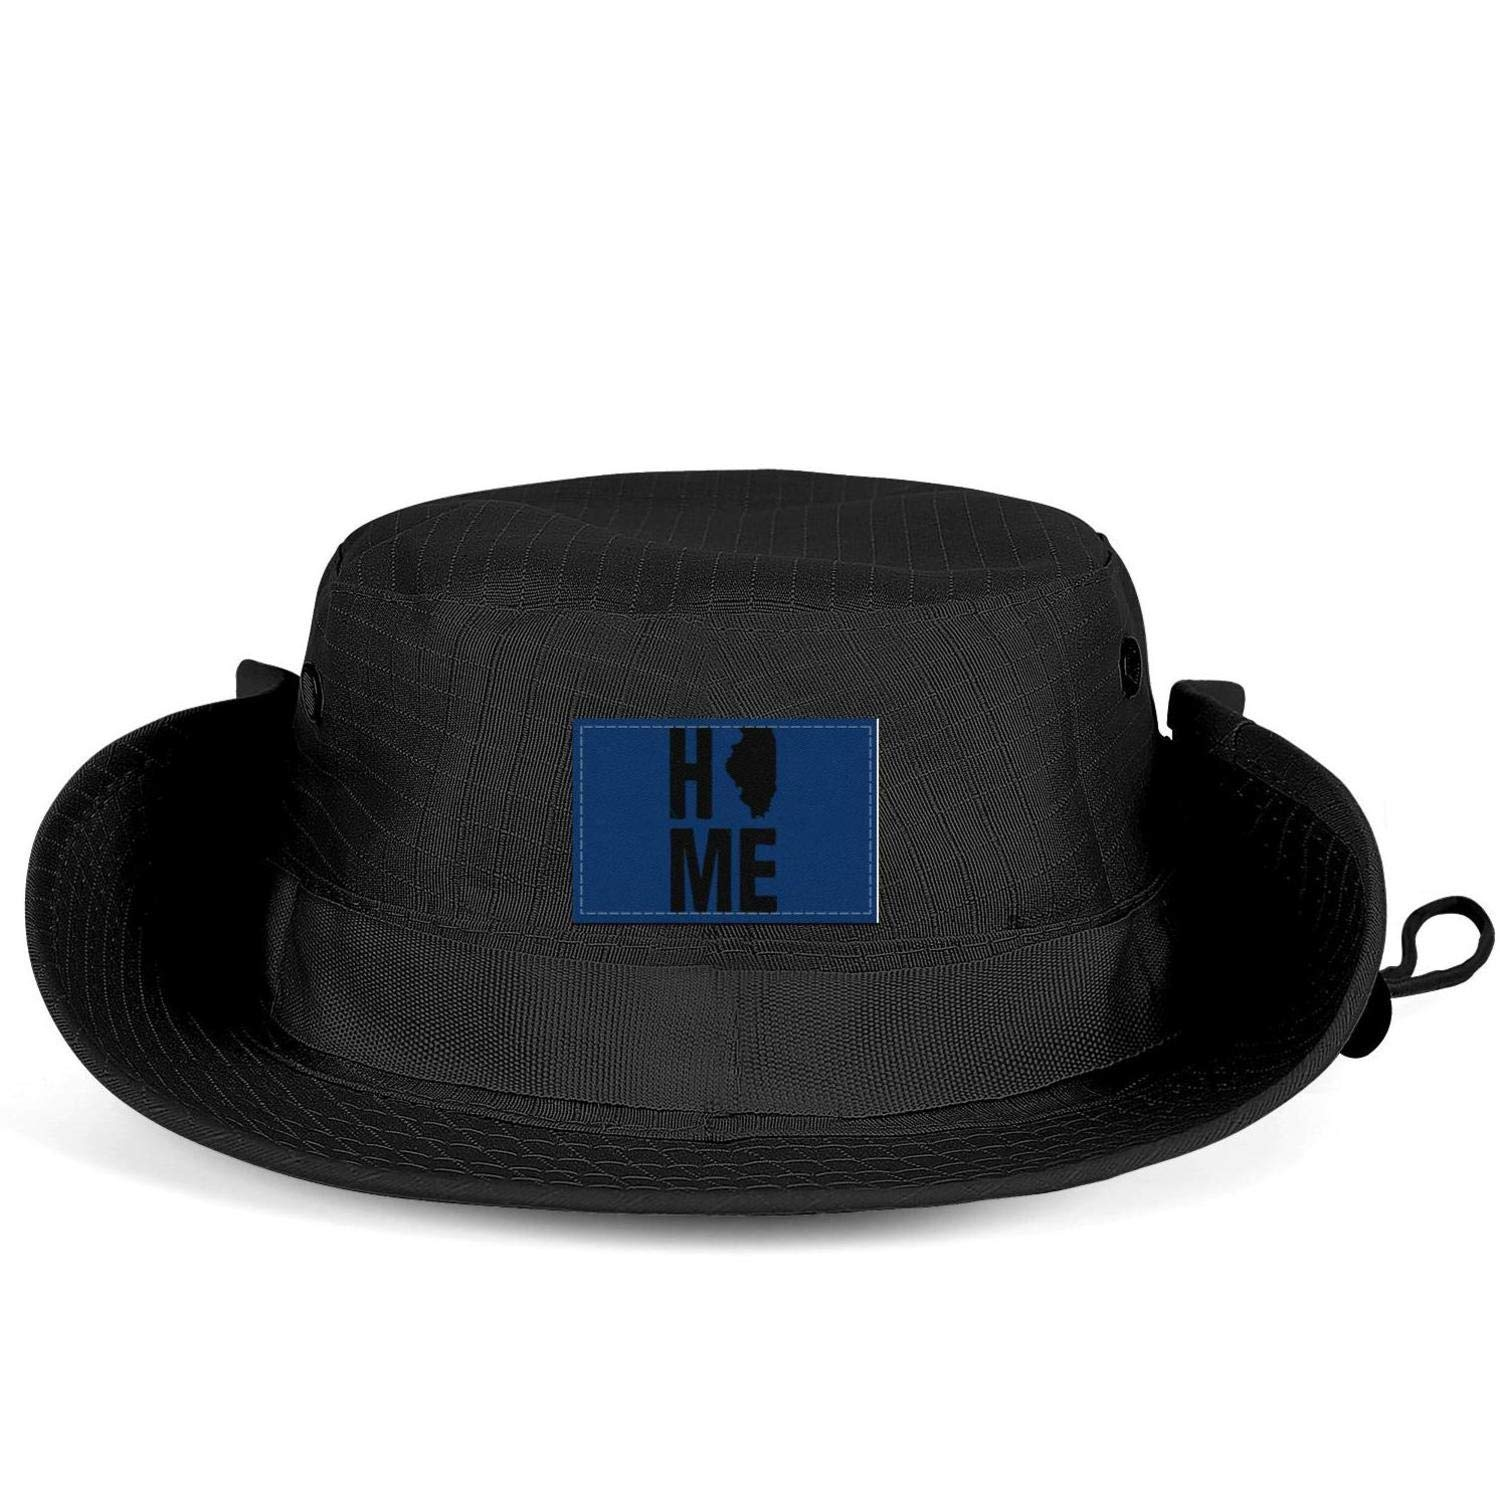 KDNLDP UnisexWoman Illinois Home Sign Black Waterproof Packable Camping Camping Cap Fish hat